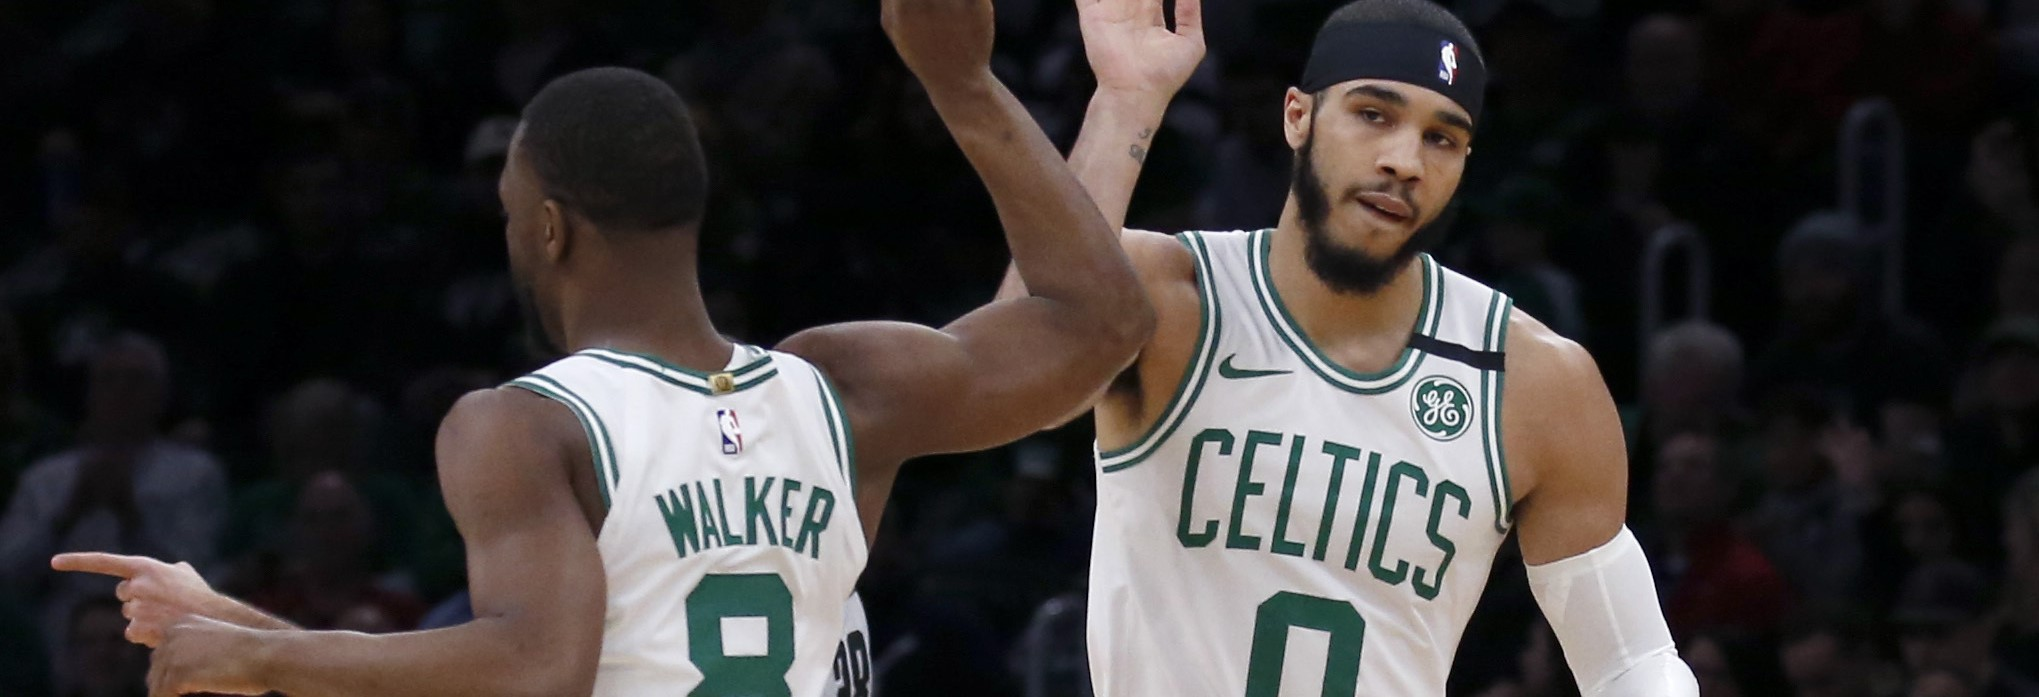 Boston Celtics vs Indiana Pacers Basketball Live Sports Betting Odds, NCAA Predictions